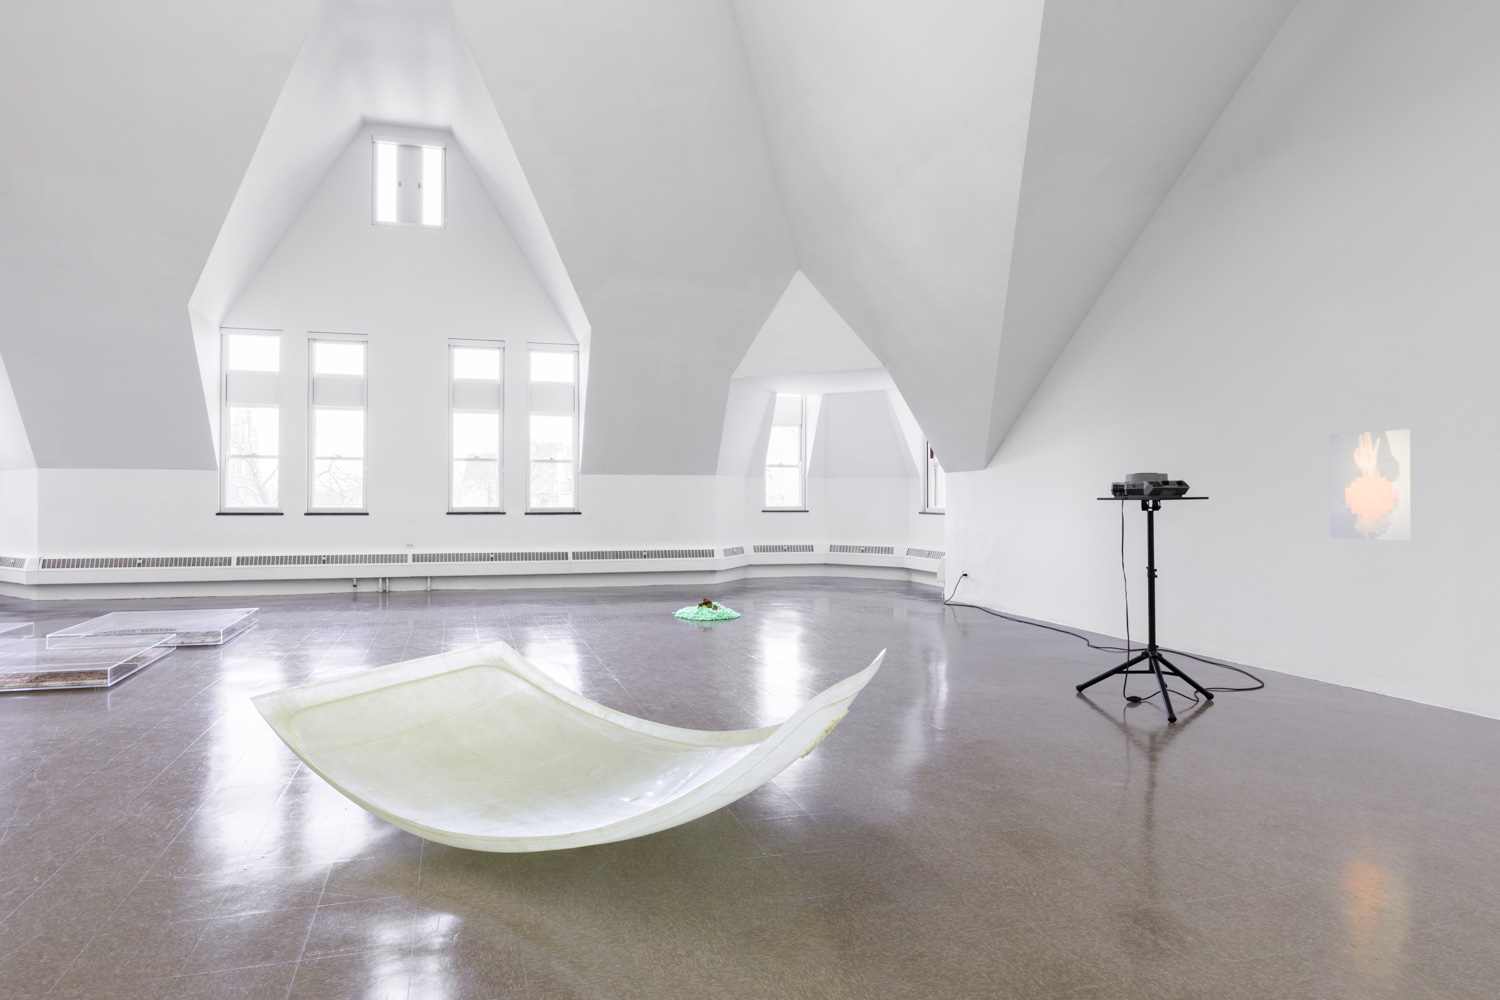 A curved fiberglass sheet rests on the floor near a projector playing a movie on a wall.